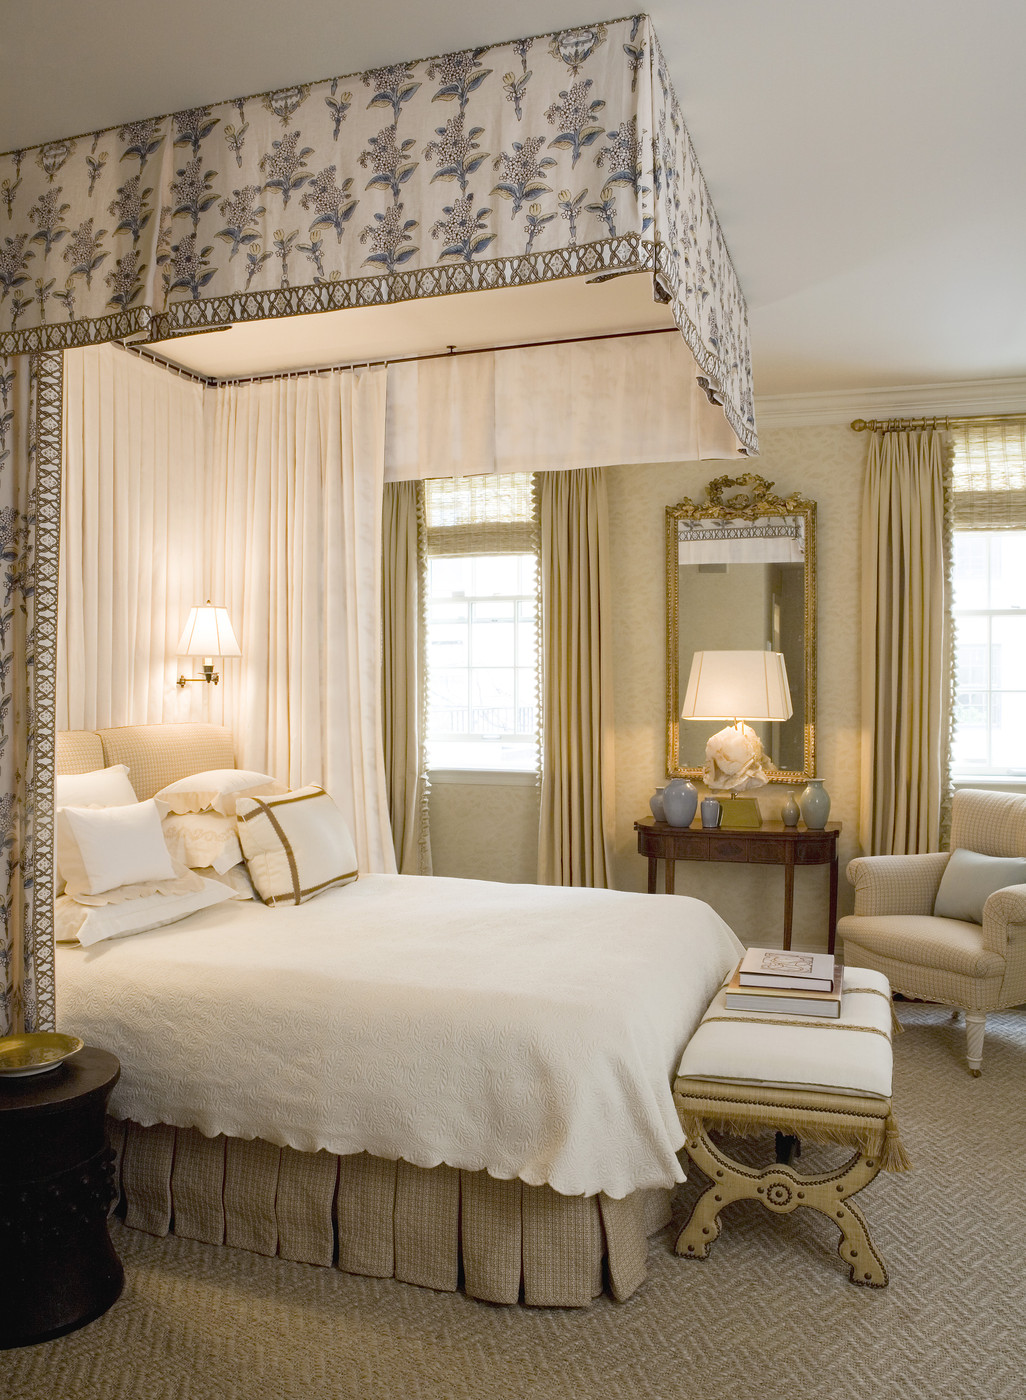 Bed Valance Photos Design Ideas Remodel And Decor Lonny